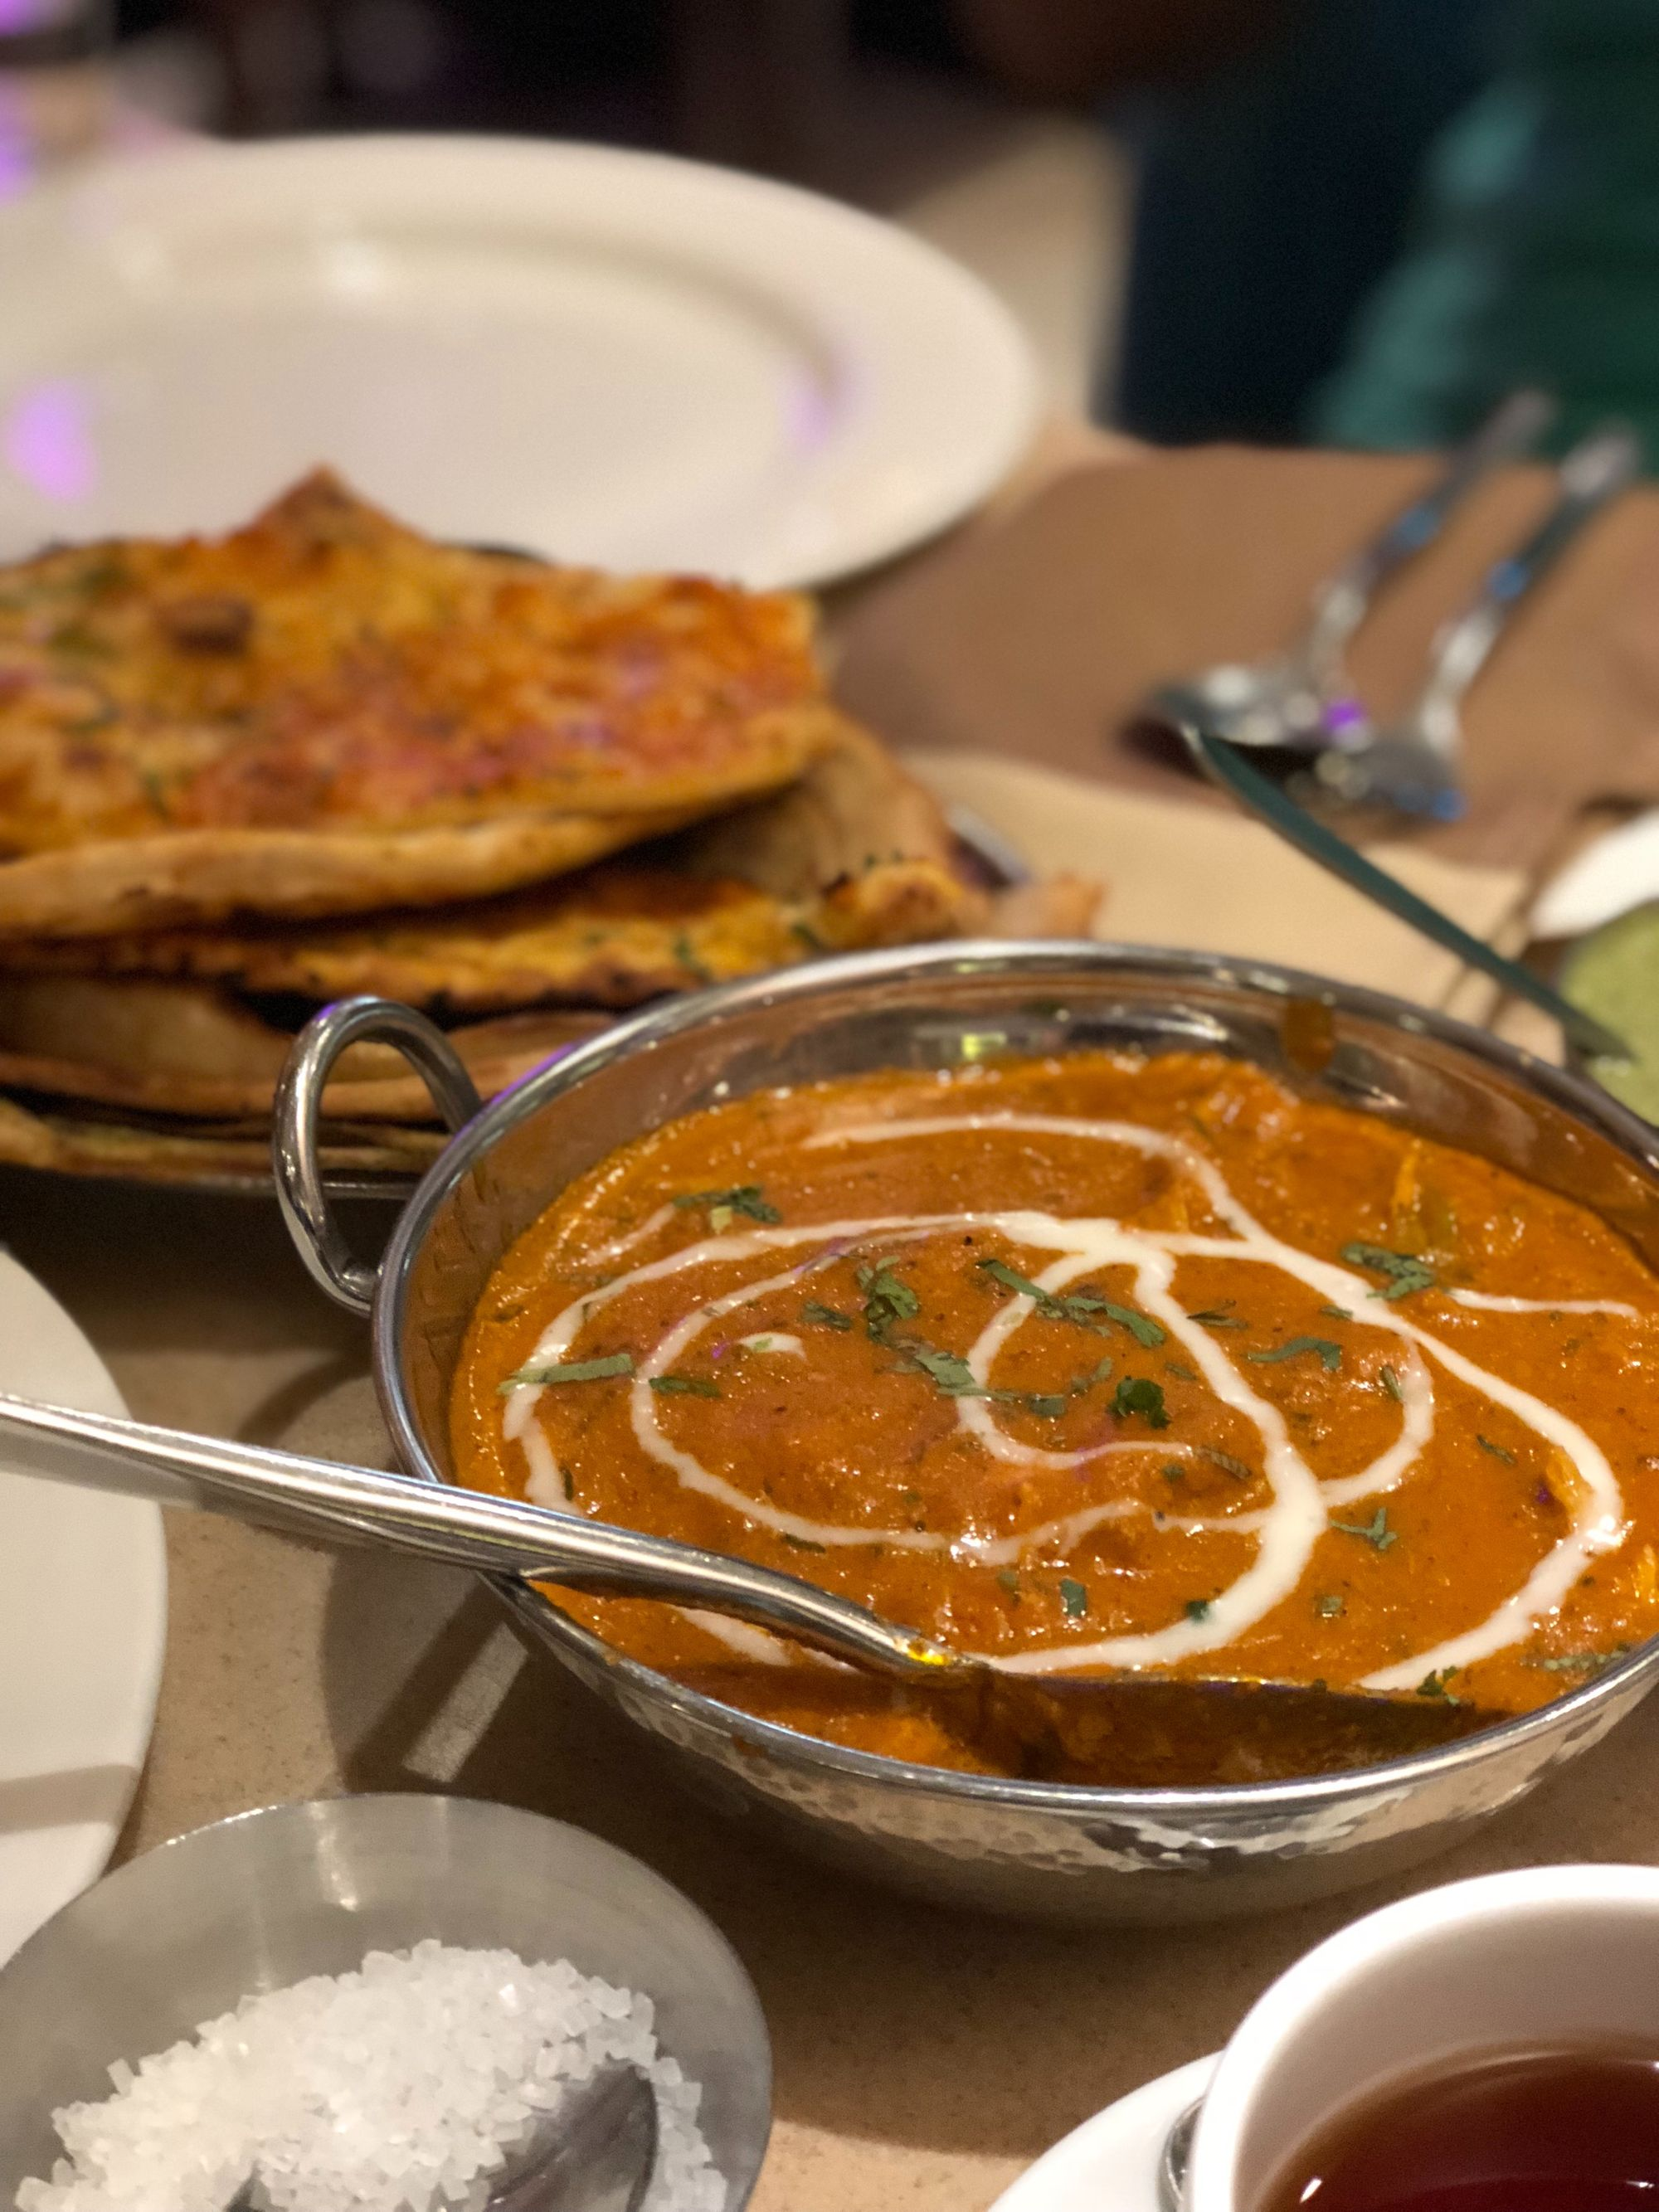 Butter chicken at Have More's in Delhi, India.